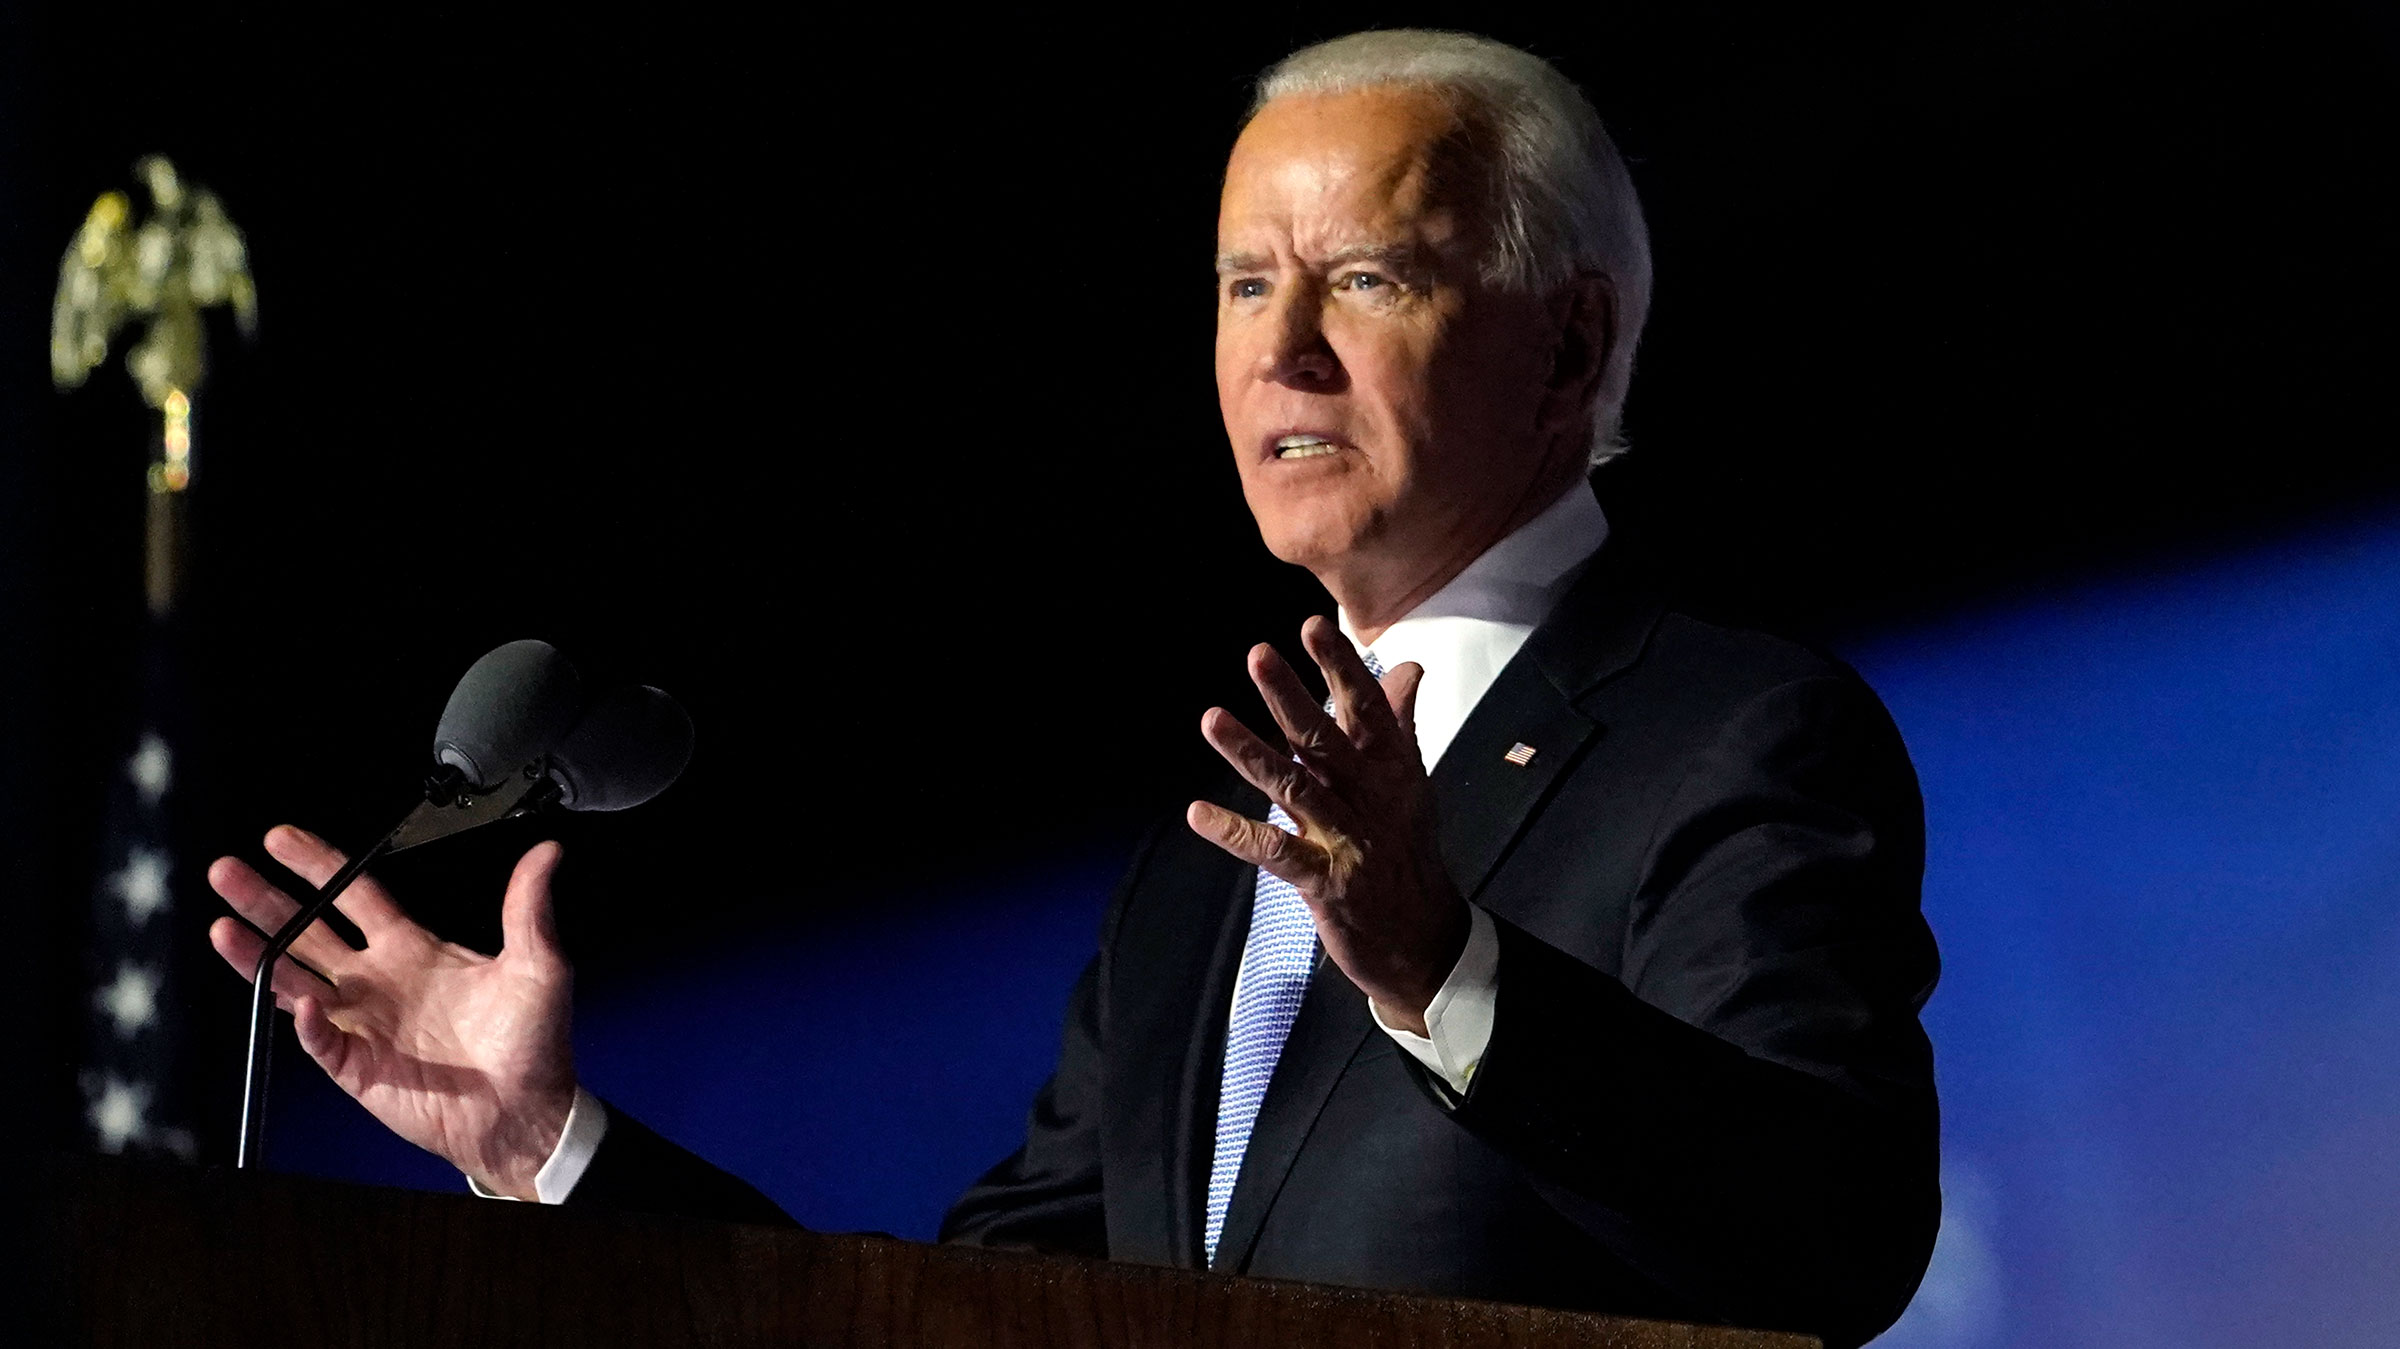 President-elect Joe Biden speaks on Saturday, November 7 in Wilmington, Delaware.